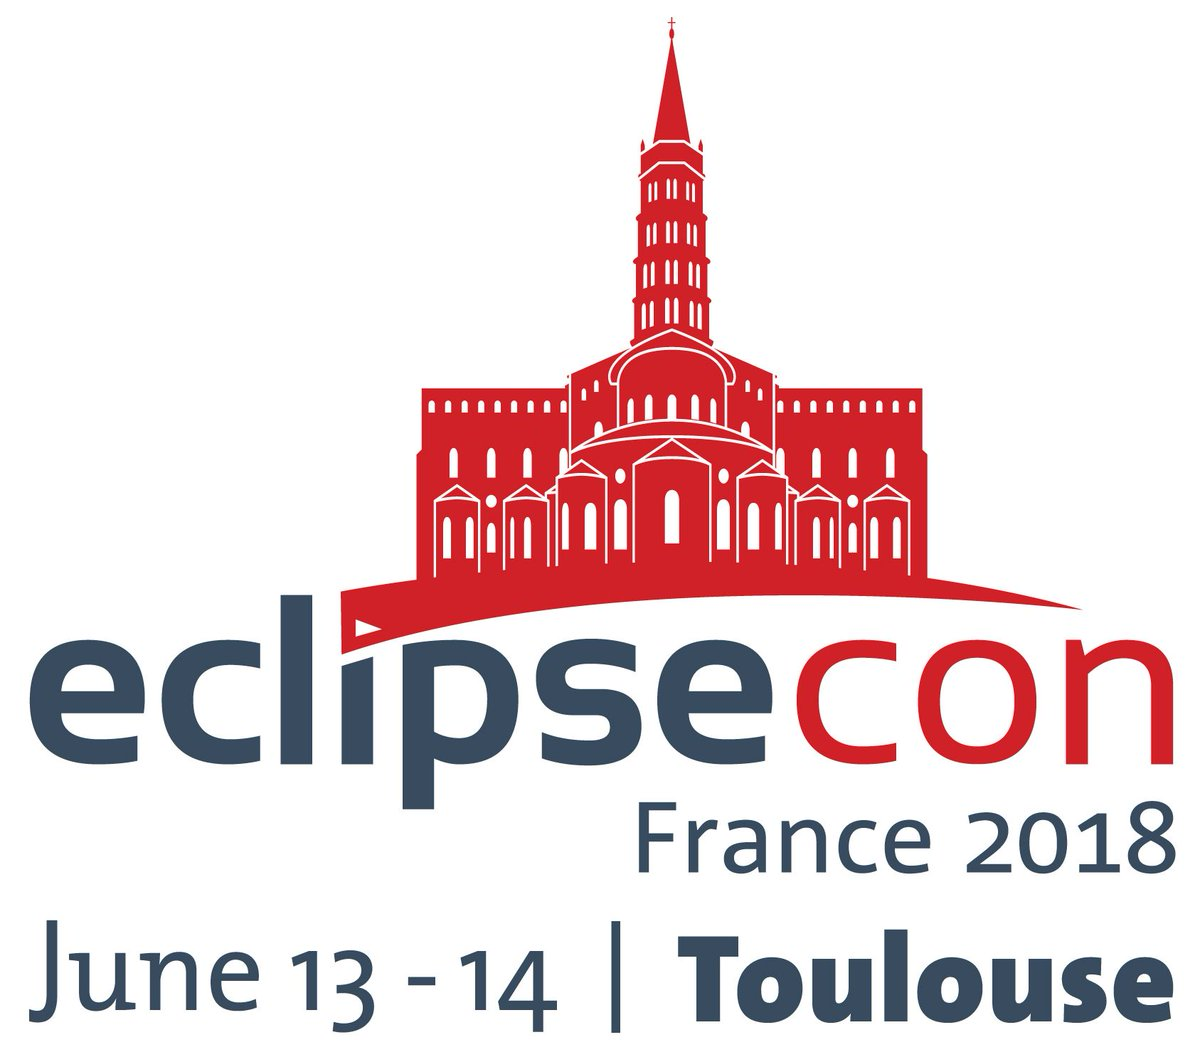 EclipseConFrance2018.jpg